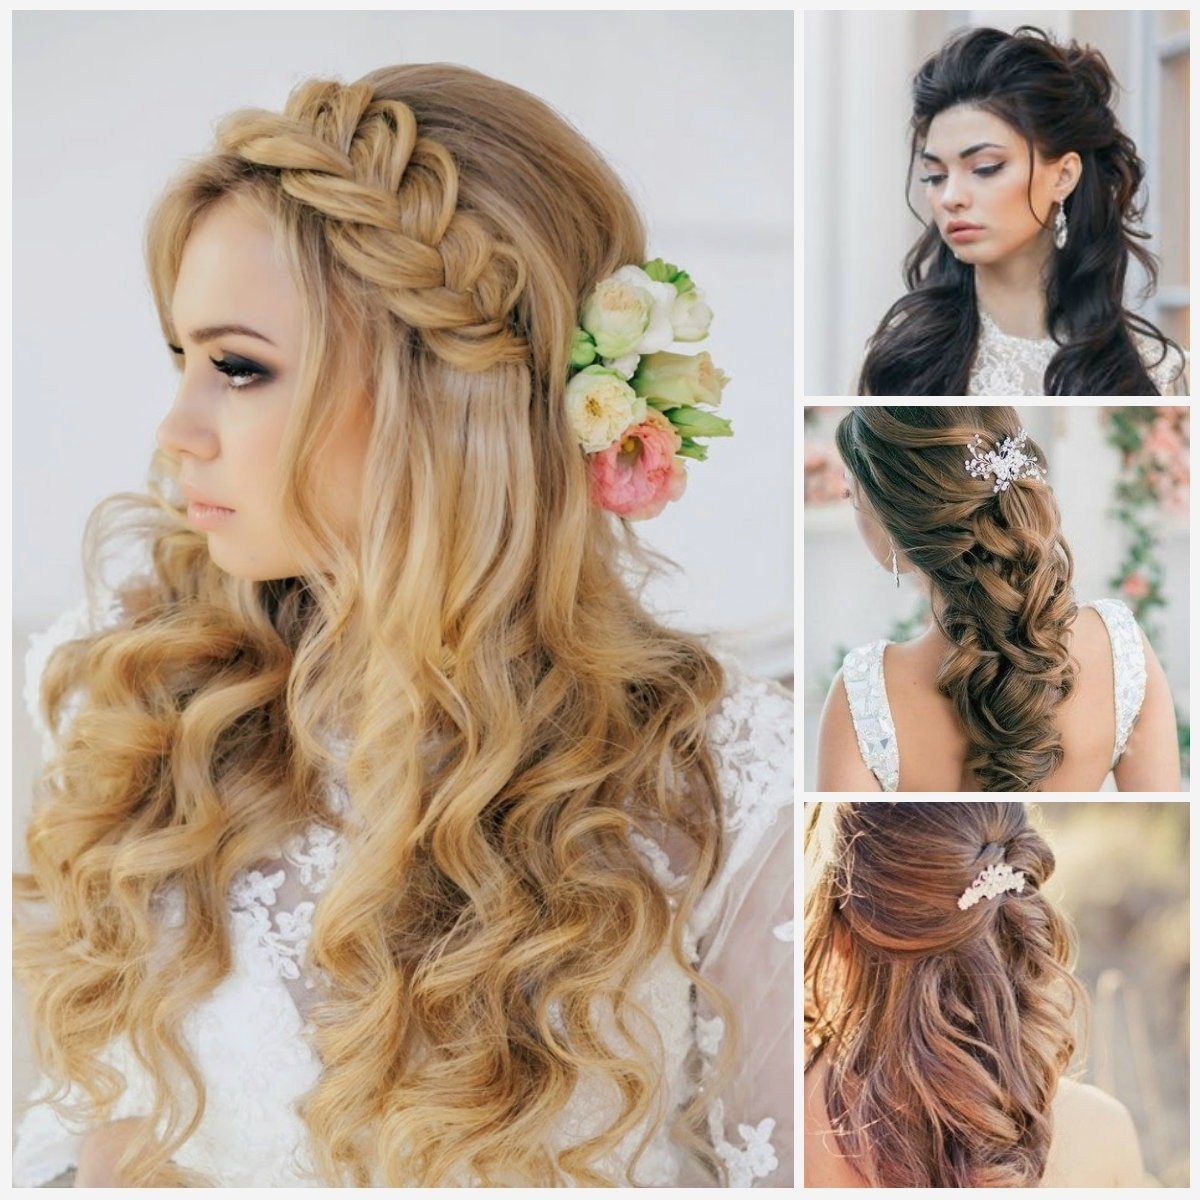 Wedding Hairstyles : Simple Wedding Hairstyles Curls Down Trends With Best And Newest Curls Down Wedding Hairstyles (View 11 of 15)